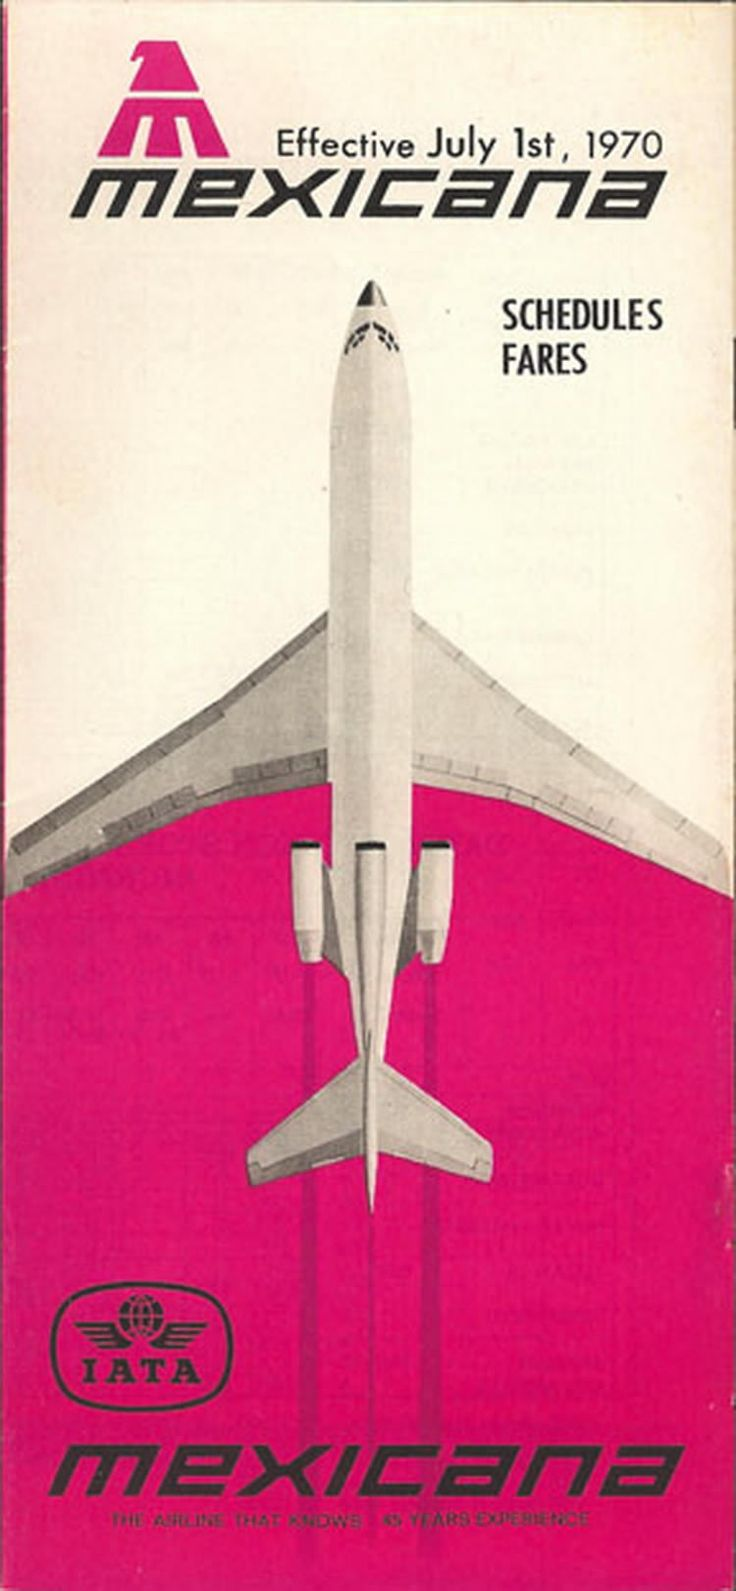 Vintage airline timetable for MEXICANA Airlines - Website Credit Here - http://www.aviationexplorer.com/vintage_airline_timetables.html http://xtremefreelance.com/ro